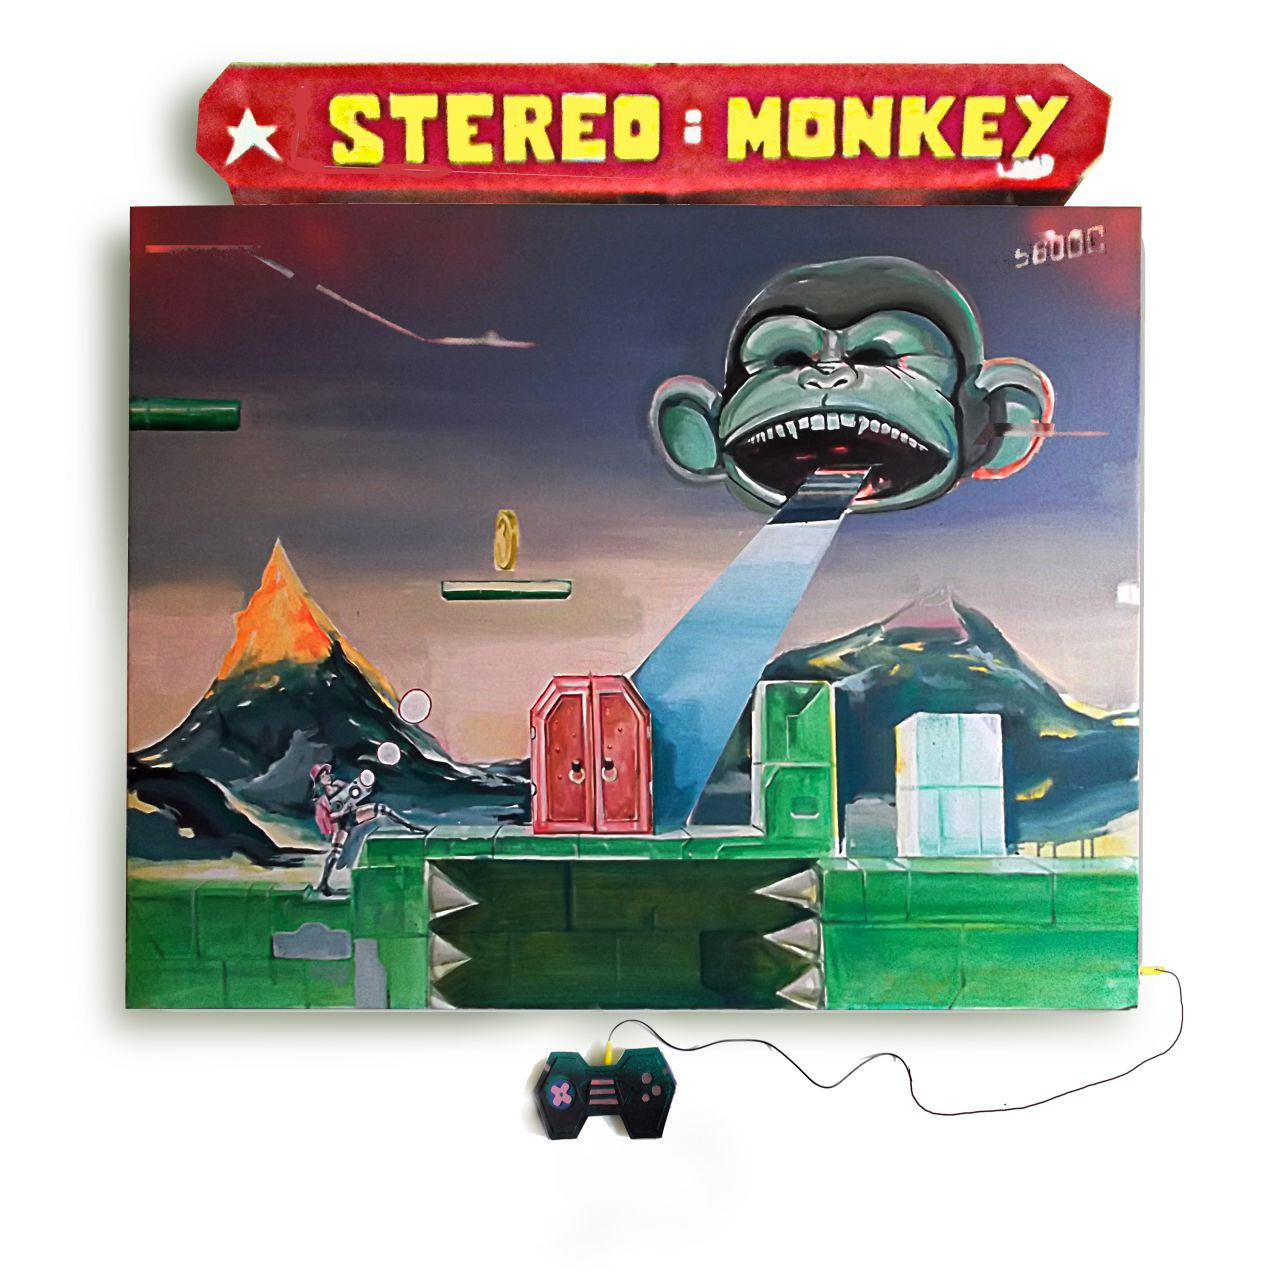 STEREO MONKEY. SERIE ARCADE PAINTINGS (2018) - Jonathan Notario